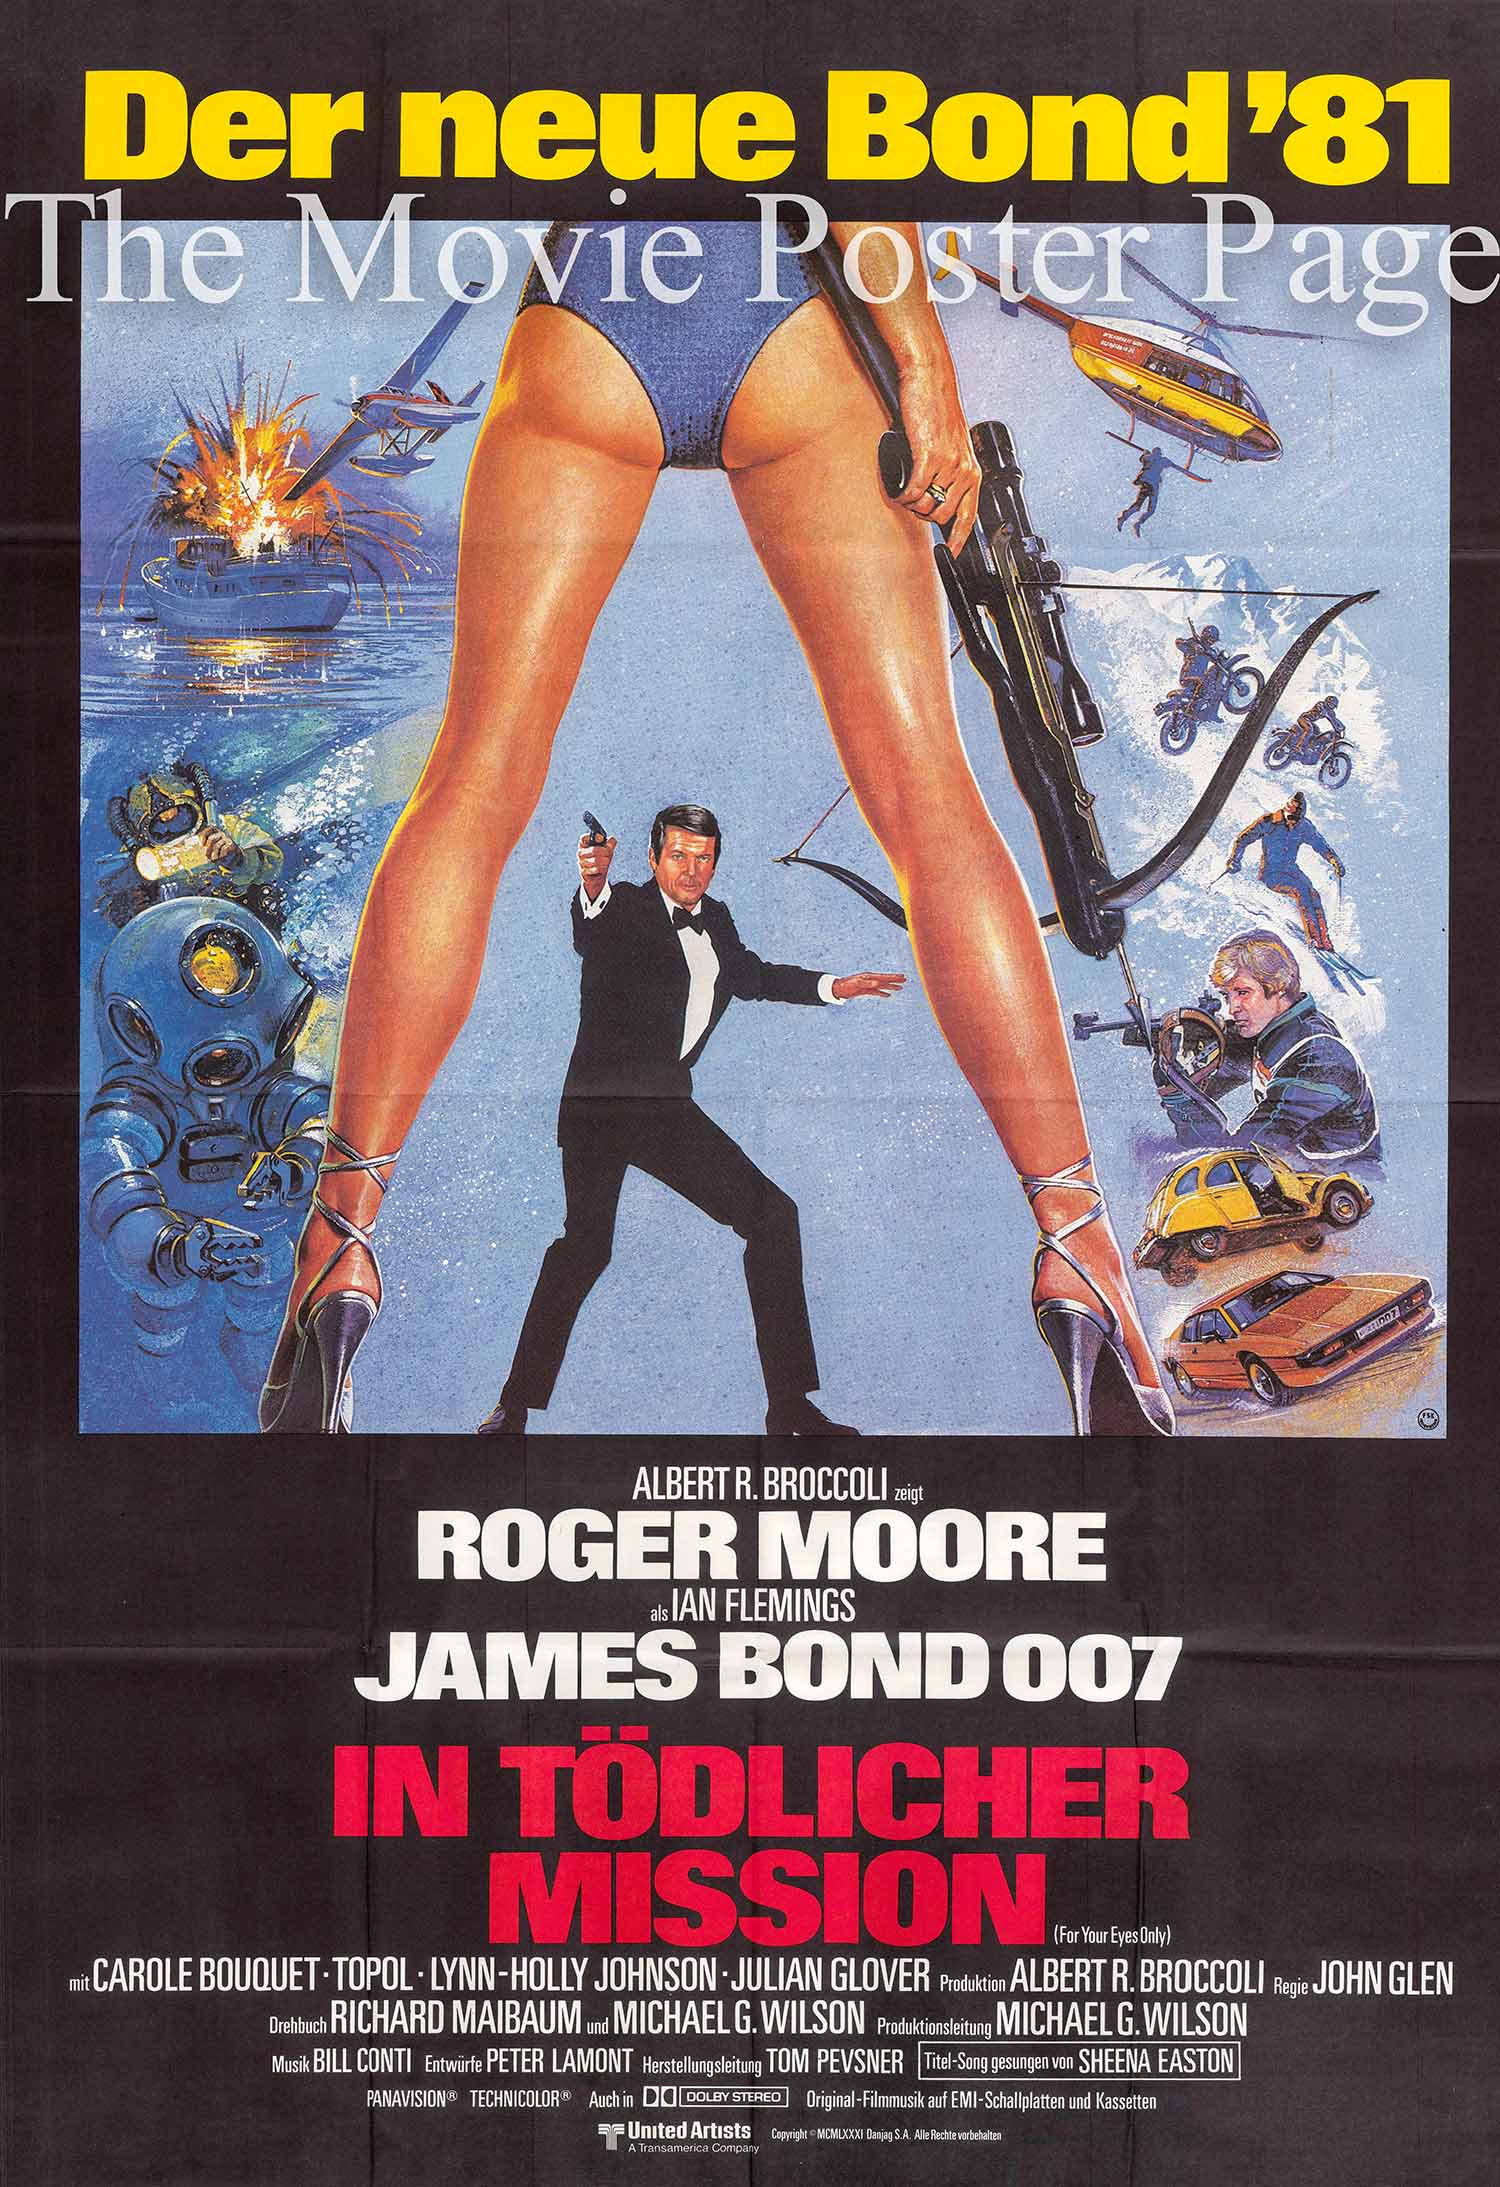 Pictured is a German two-sheet poster for the 1981 John Glen film For Your Eyes Only starring Roger Moore as James Bond.